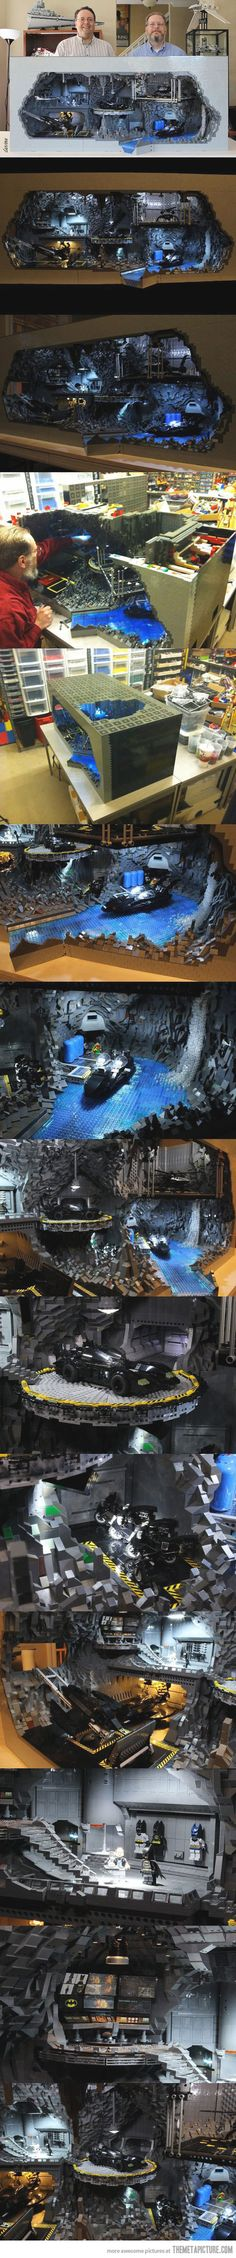 LEGO Batcave - 20,000 LEGO pieces